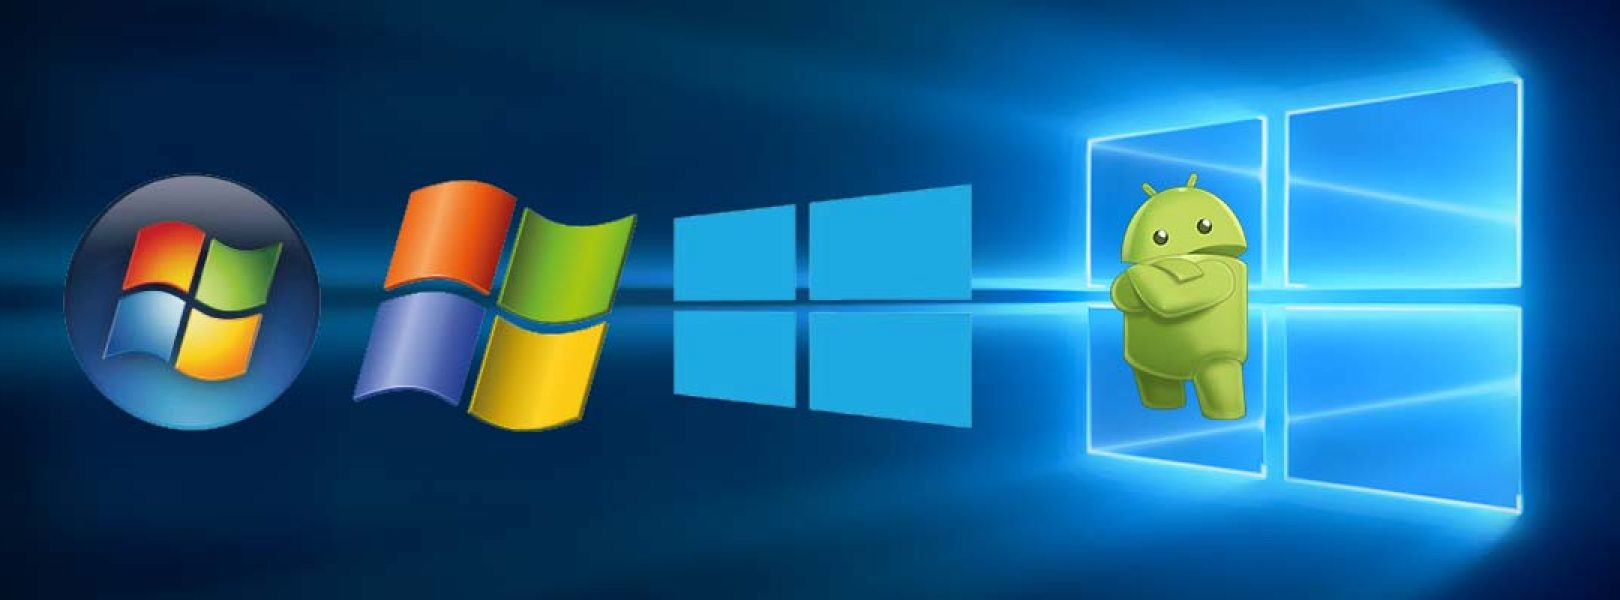 windows 10 october update network issues